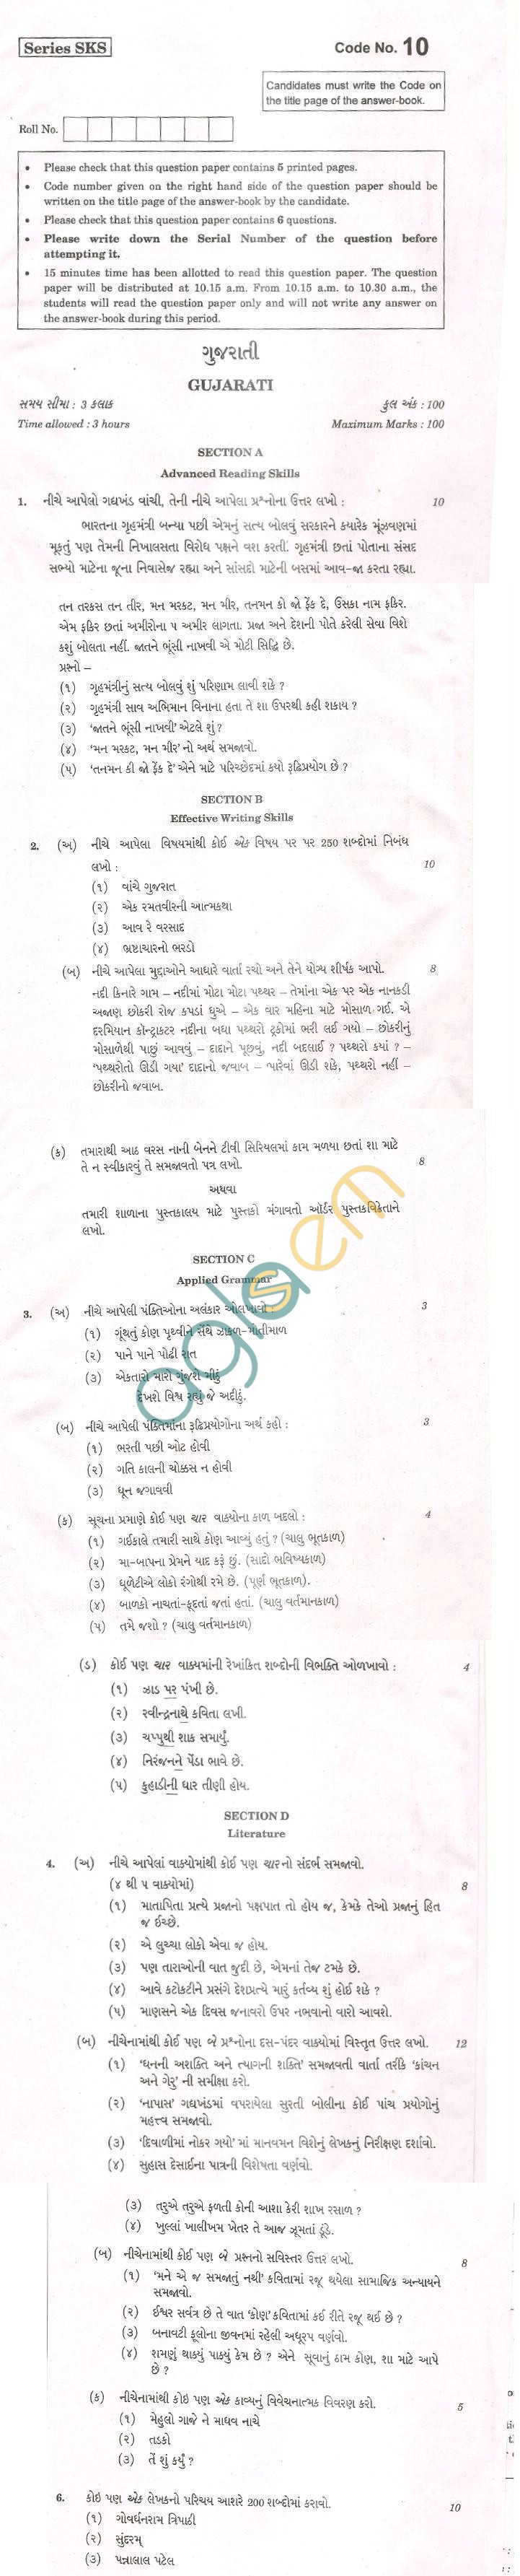 CBSE Board Exam 2013 Class XII Question Paper - Gujarati